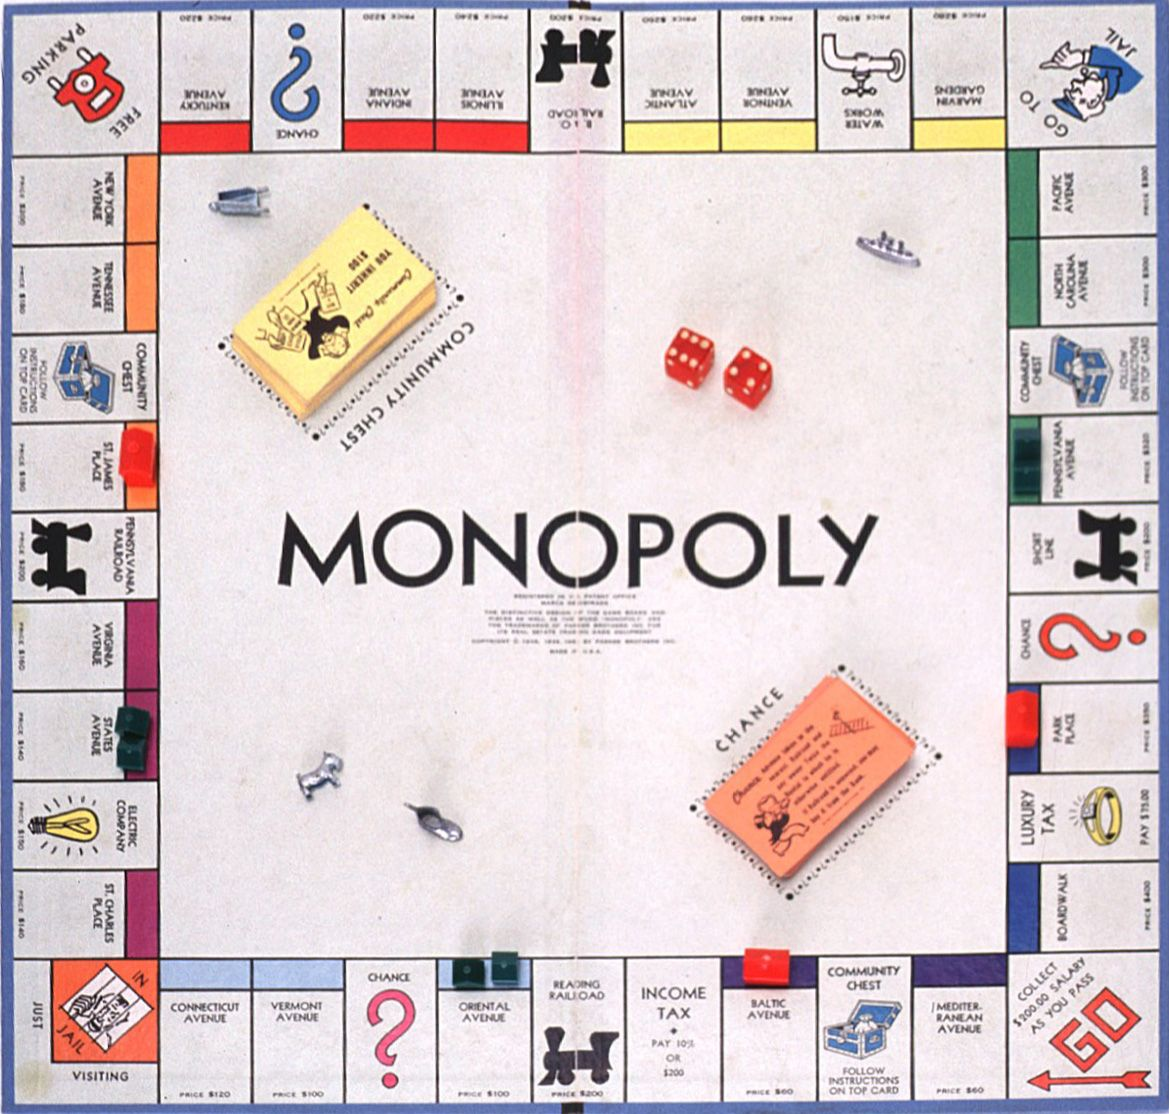 monopoly of bangladesh Find great deals on ebay for monopoly money and little tykes dolls house shop with confidence skip to main content ebay hasbro monopoly money pdq for monopoly.